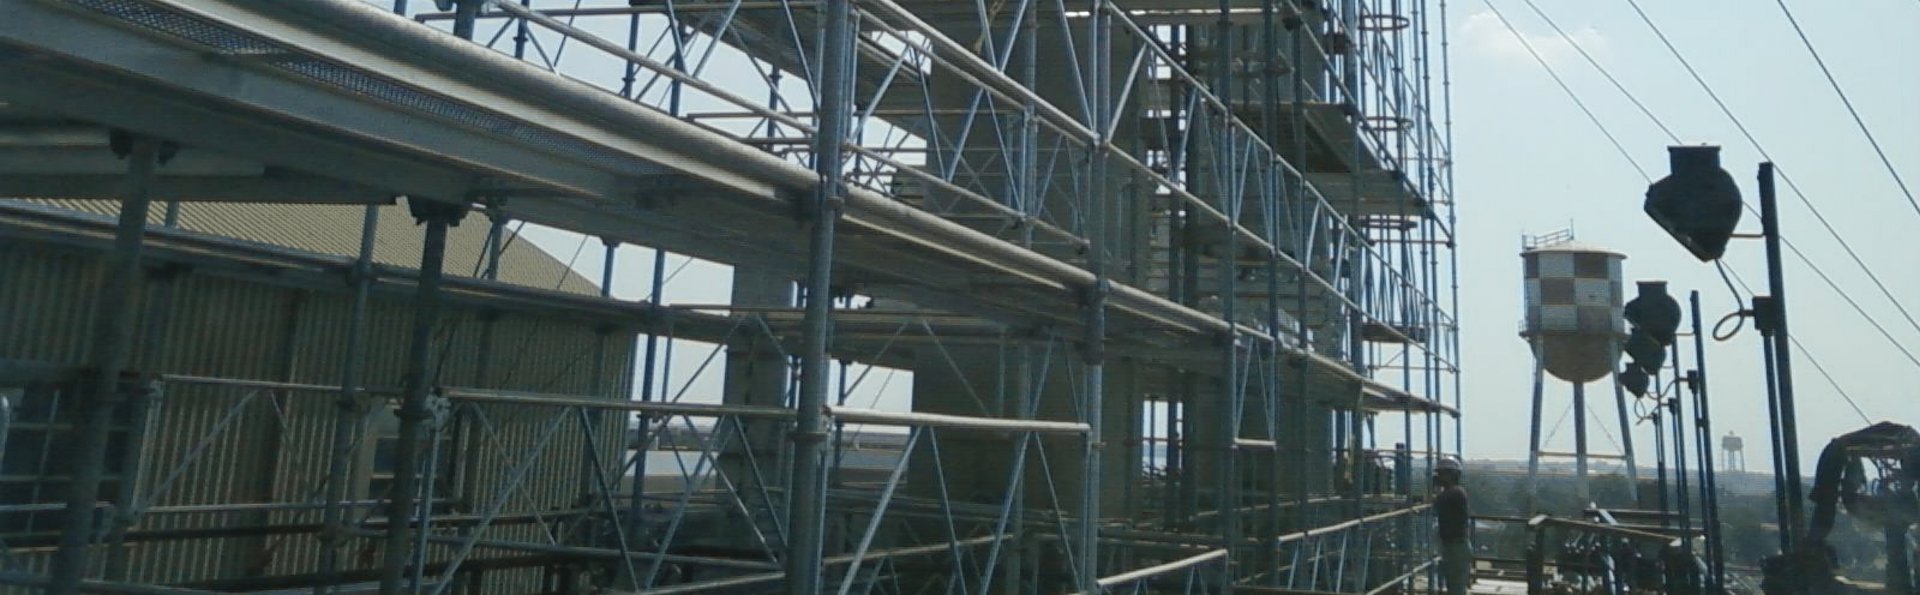 Scaffolding Resources, Articles, and Information